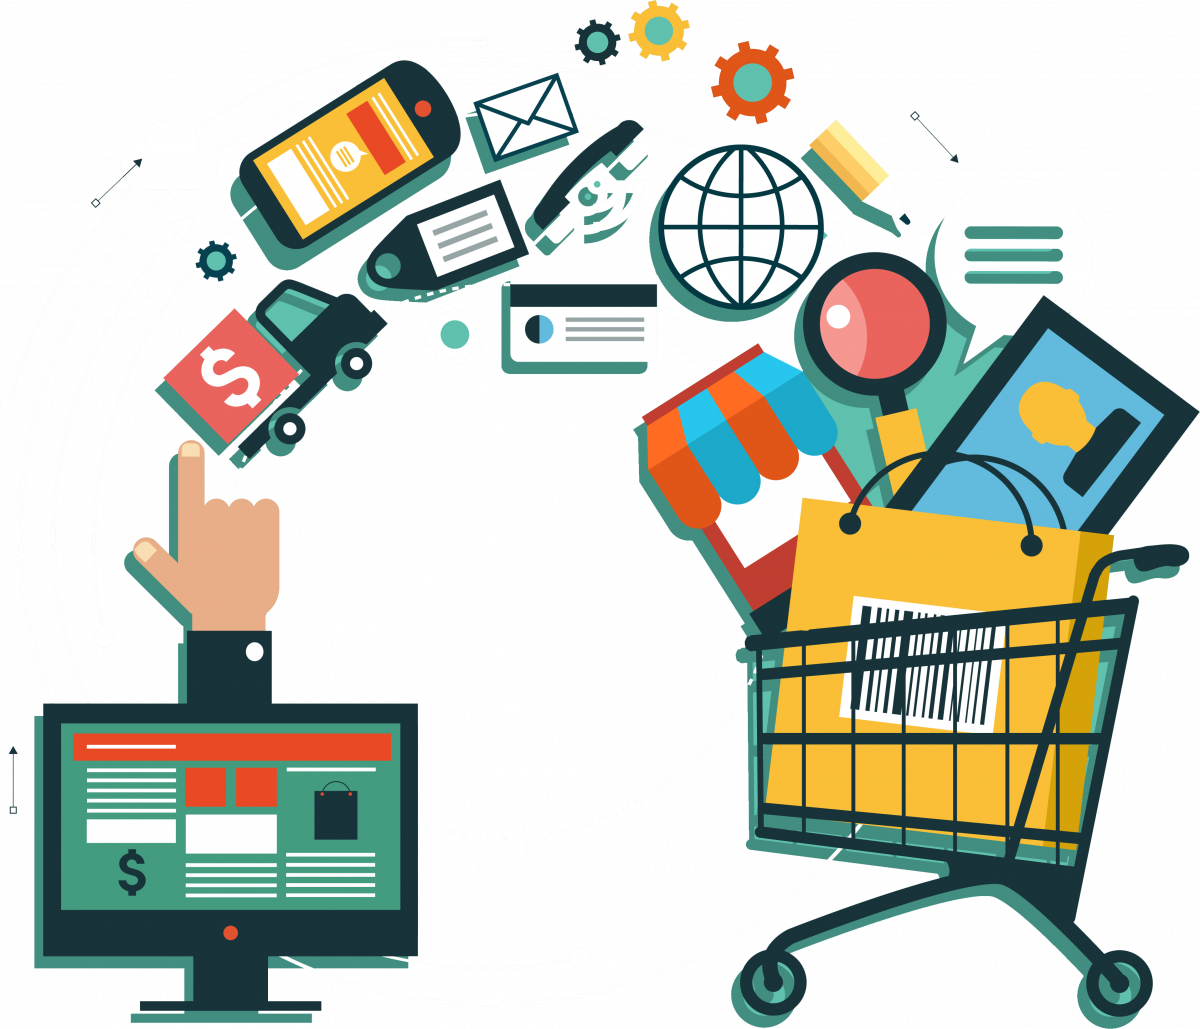 kisspng-omnichannel-retail-multichannel-marketing-customer-guadagnare-online-seriamente-2-15-5c2a51166ba039.9261413715462771424409.png